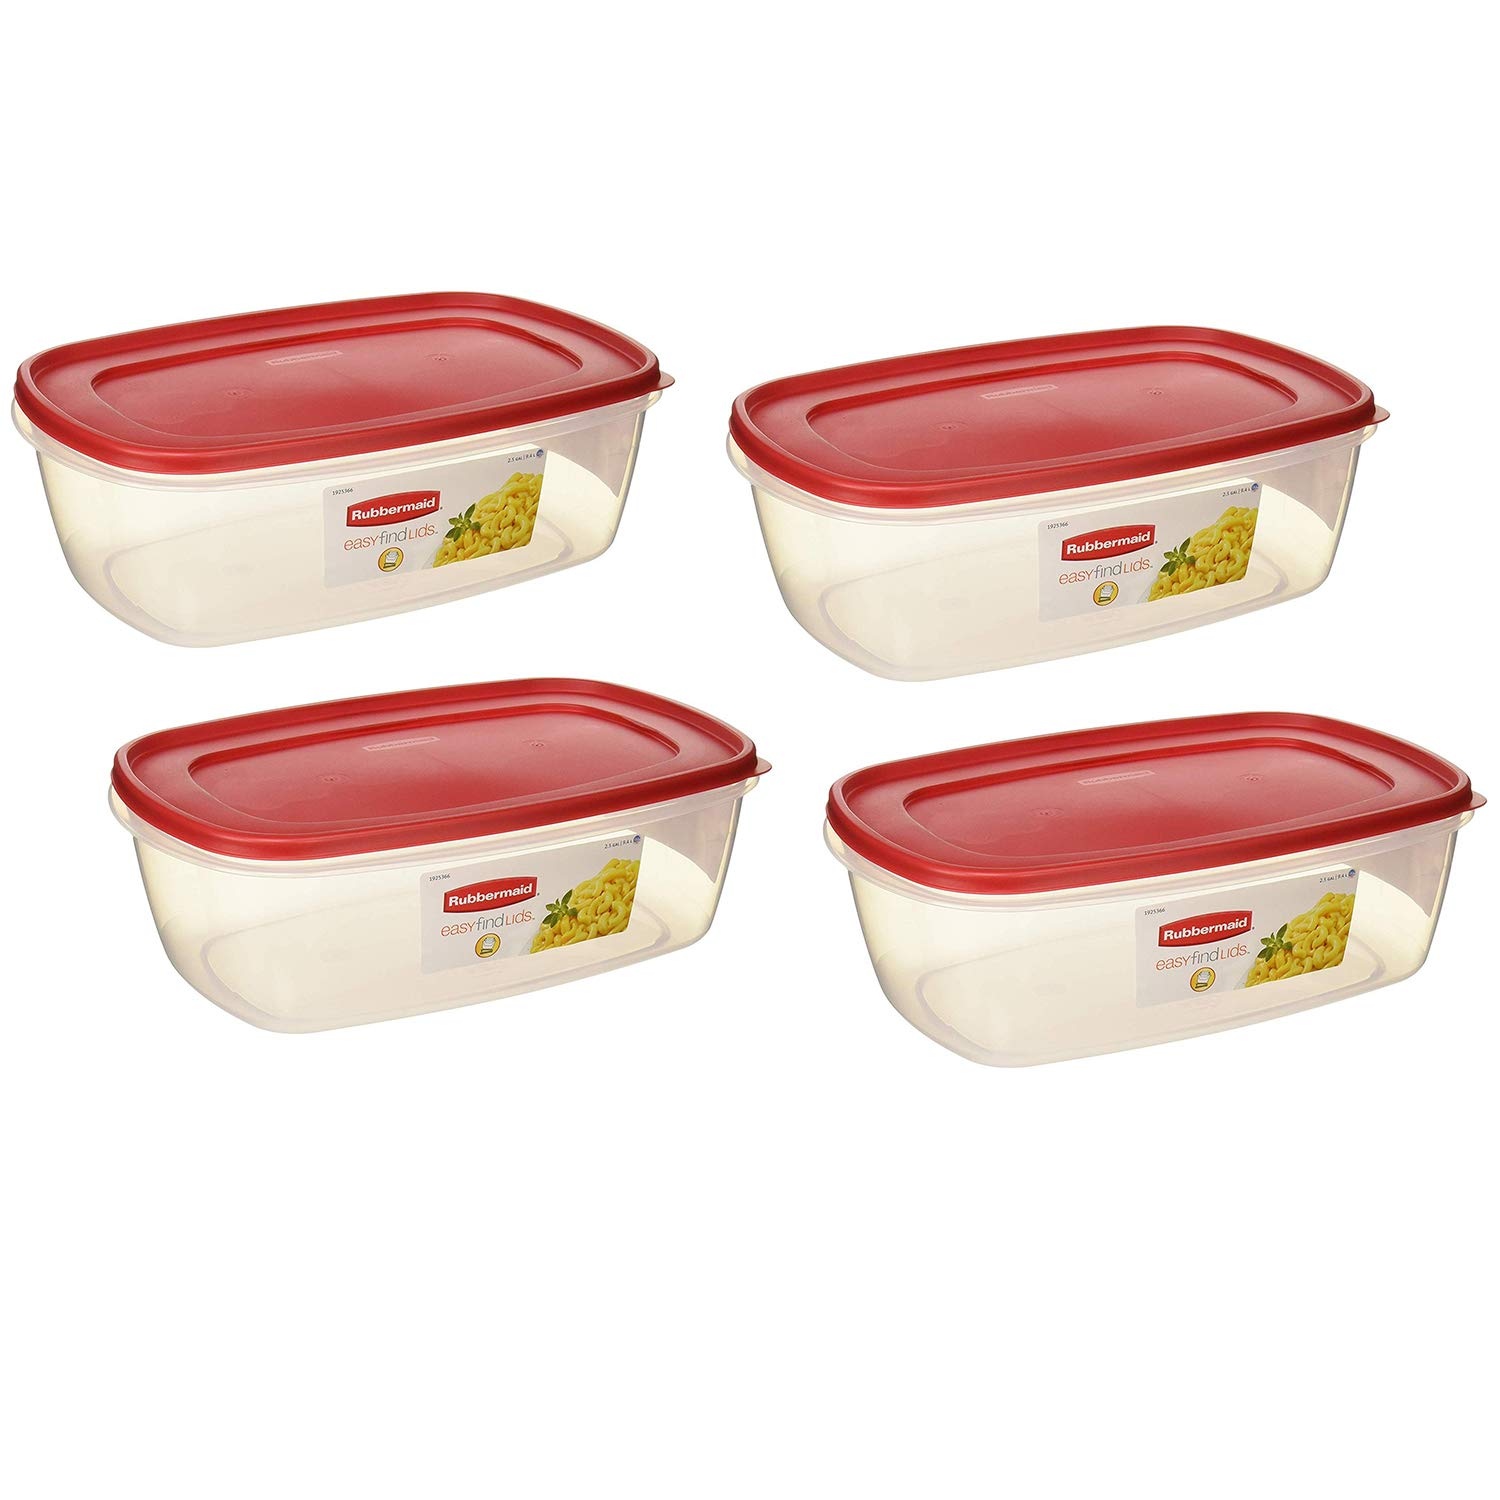 Rubbermaid 6640210 711717439723 Plastic Easy Find Lid Food Storage Container, BPA-Free, 40 Cup / 2.5 Gallon, Pack of 4, Clear with Red